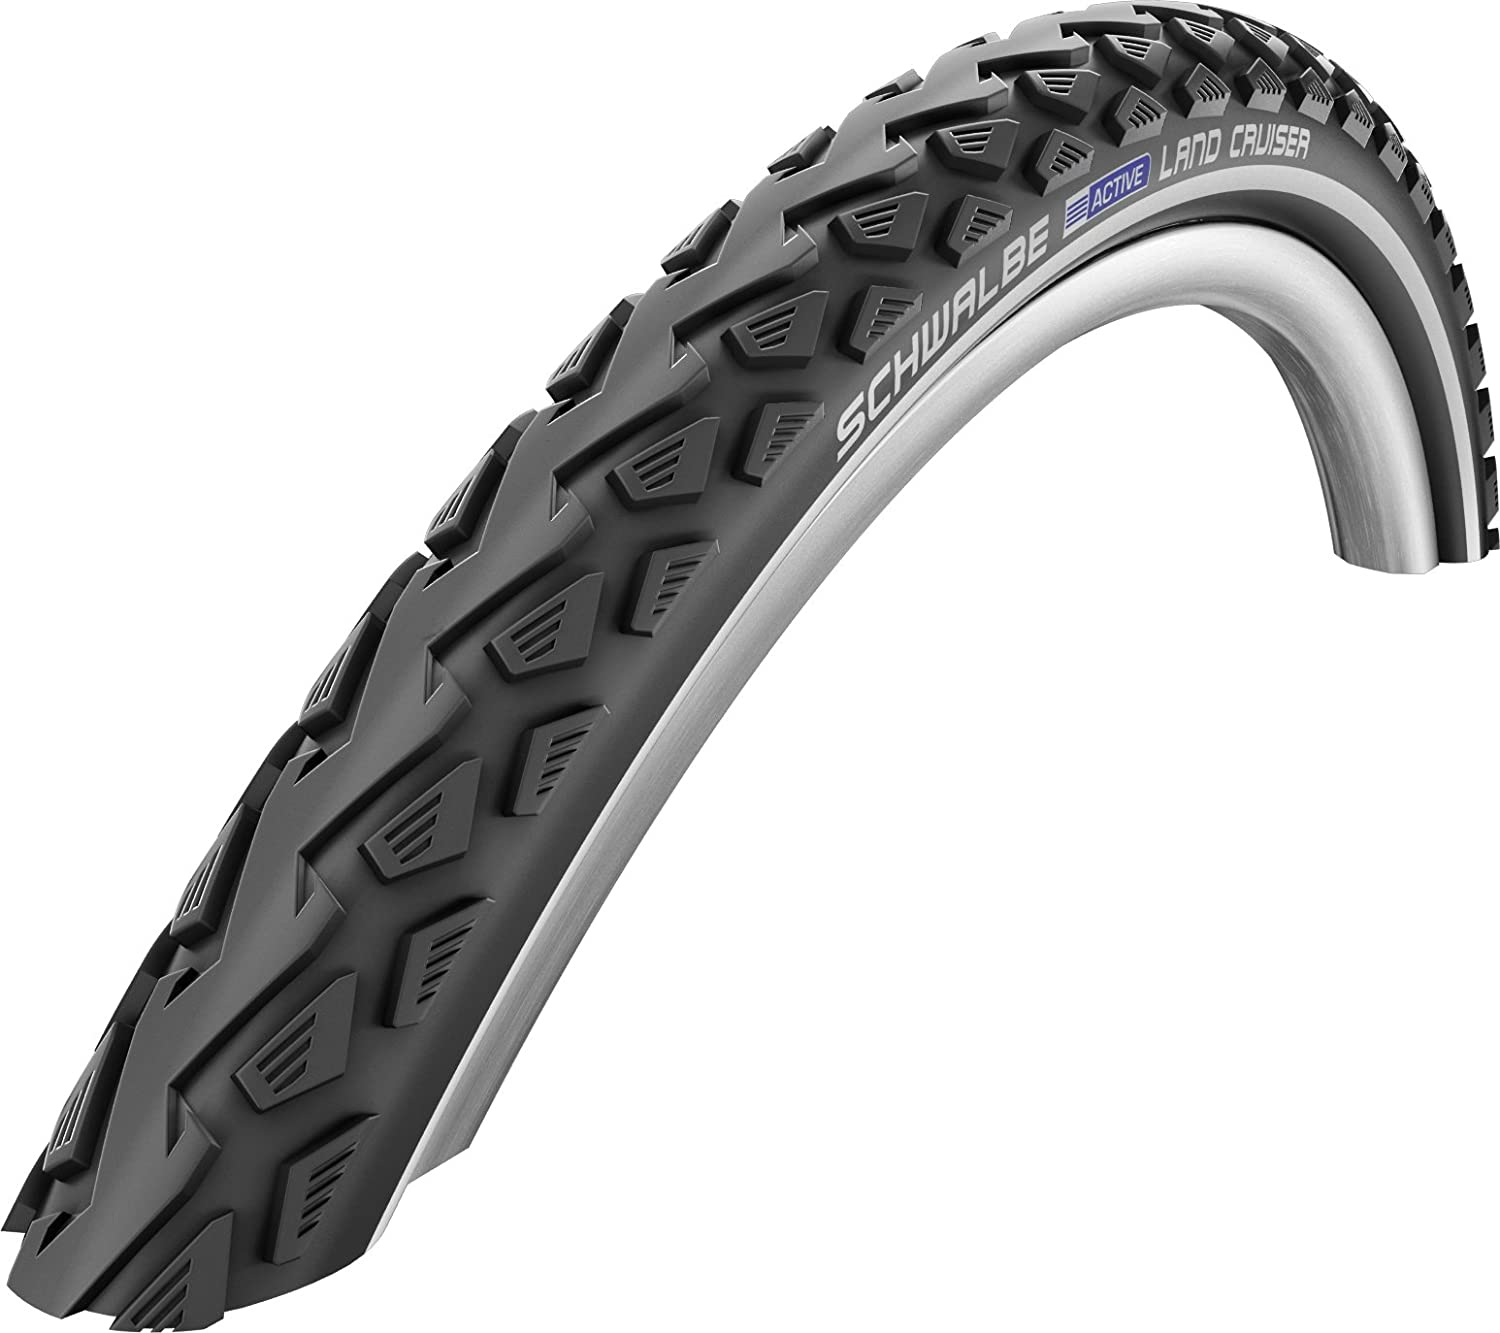 Schwalbe Road Cruiser HS 484 Mountain Bicycle Tire Wire Bead